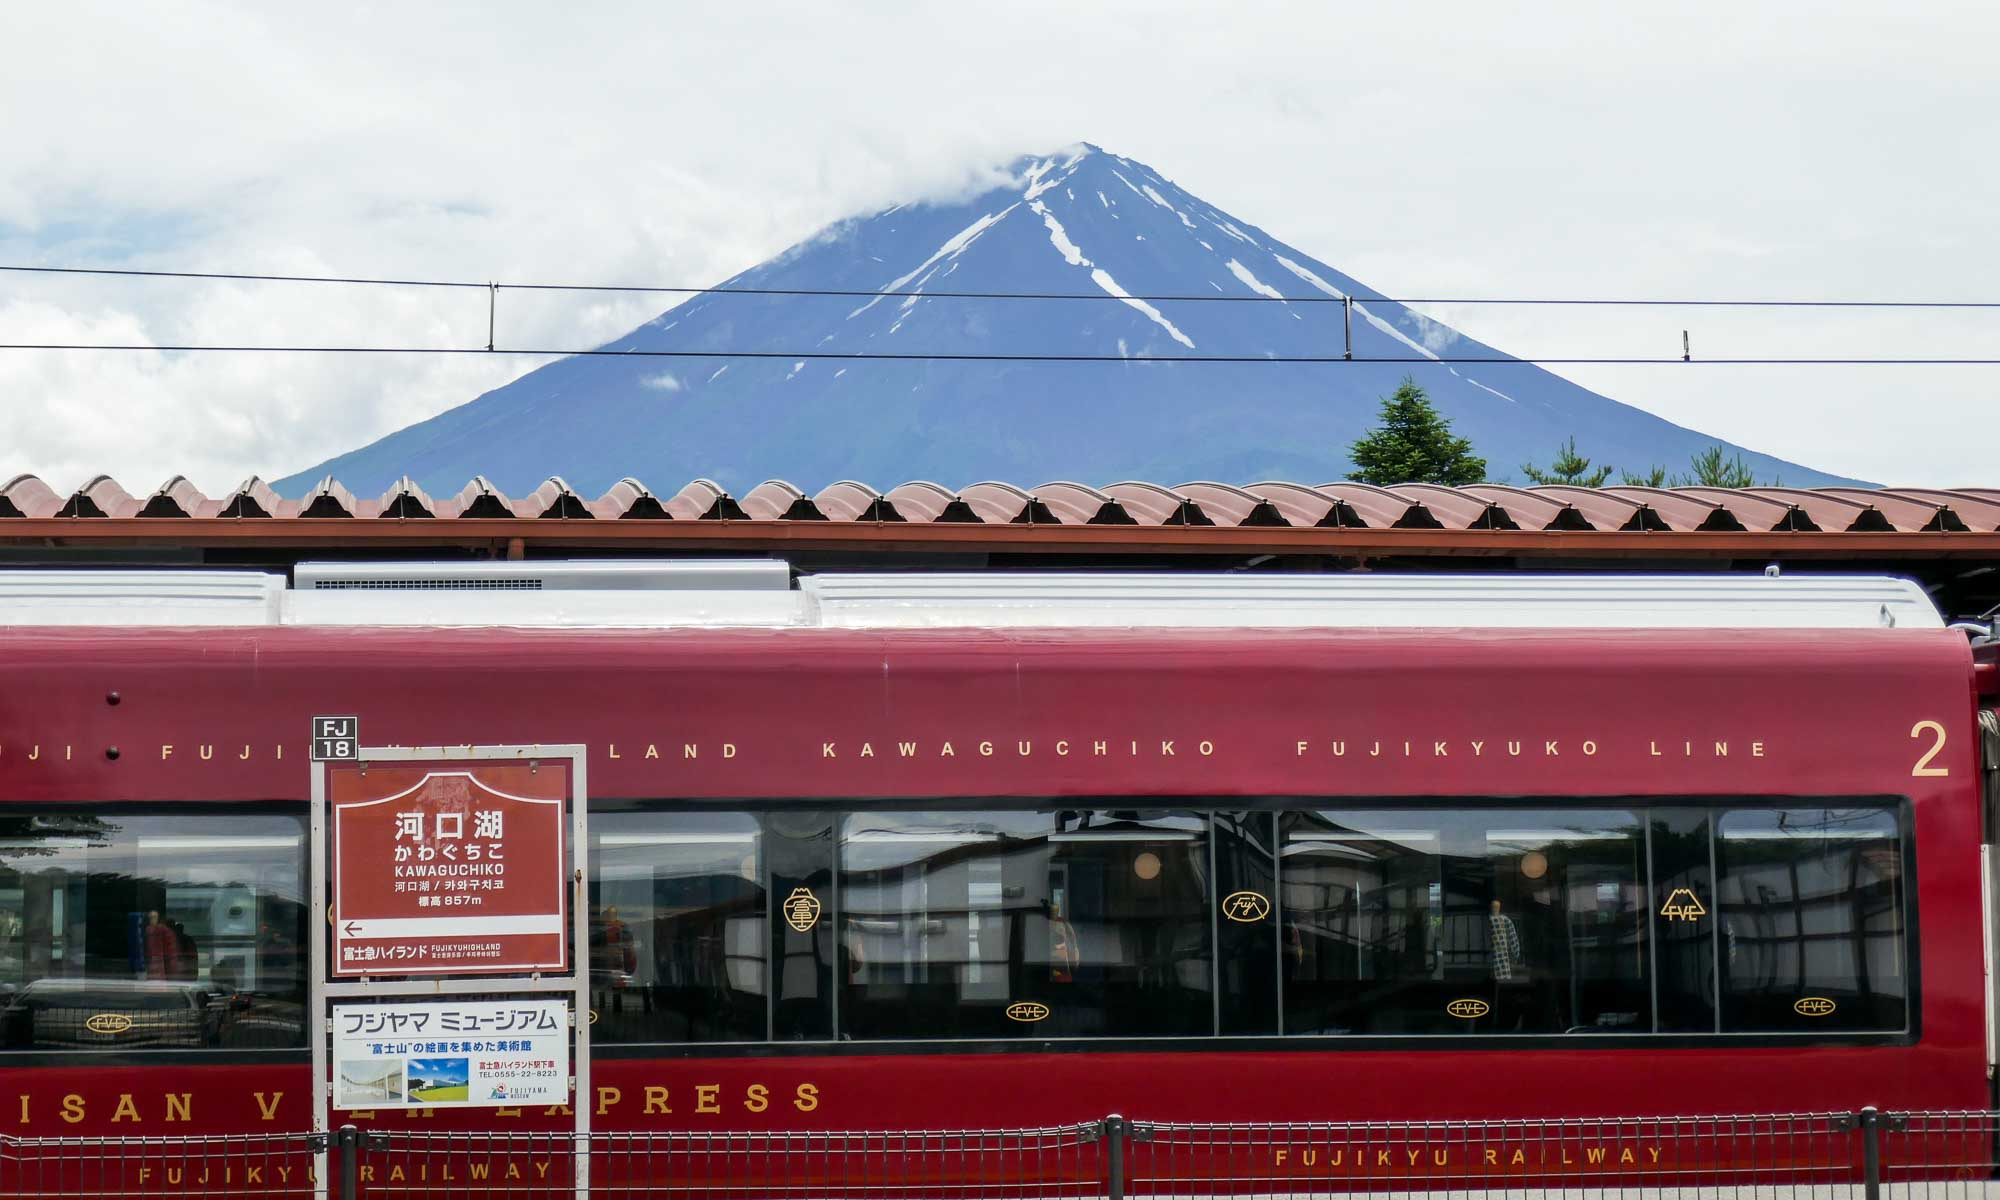 Behind the bus and train station we had a clear view of Mount Fuji, without its typical snow peak